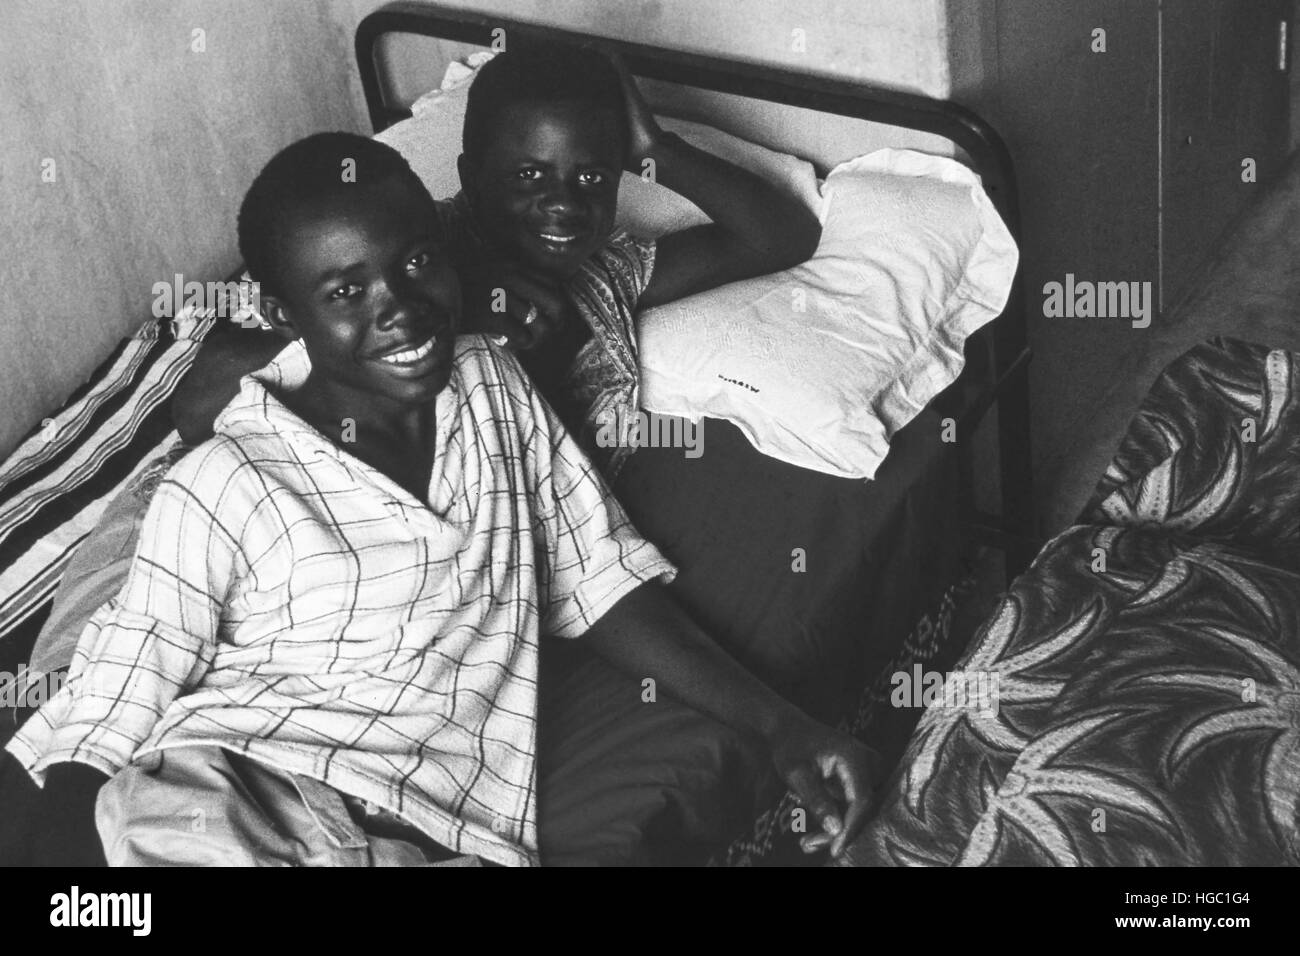 Two boarders at Jaiama Nimi Koro secondary school, Sierra Leone, in 1962. - Stock Image